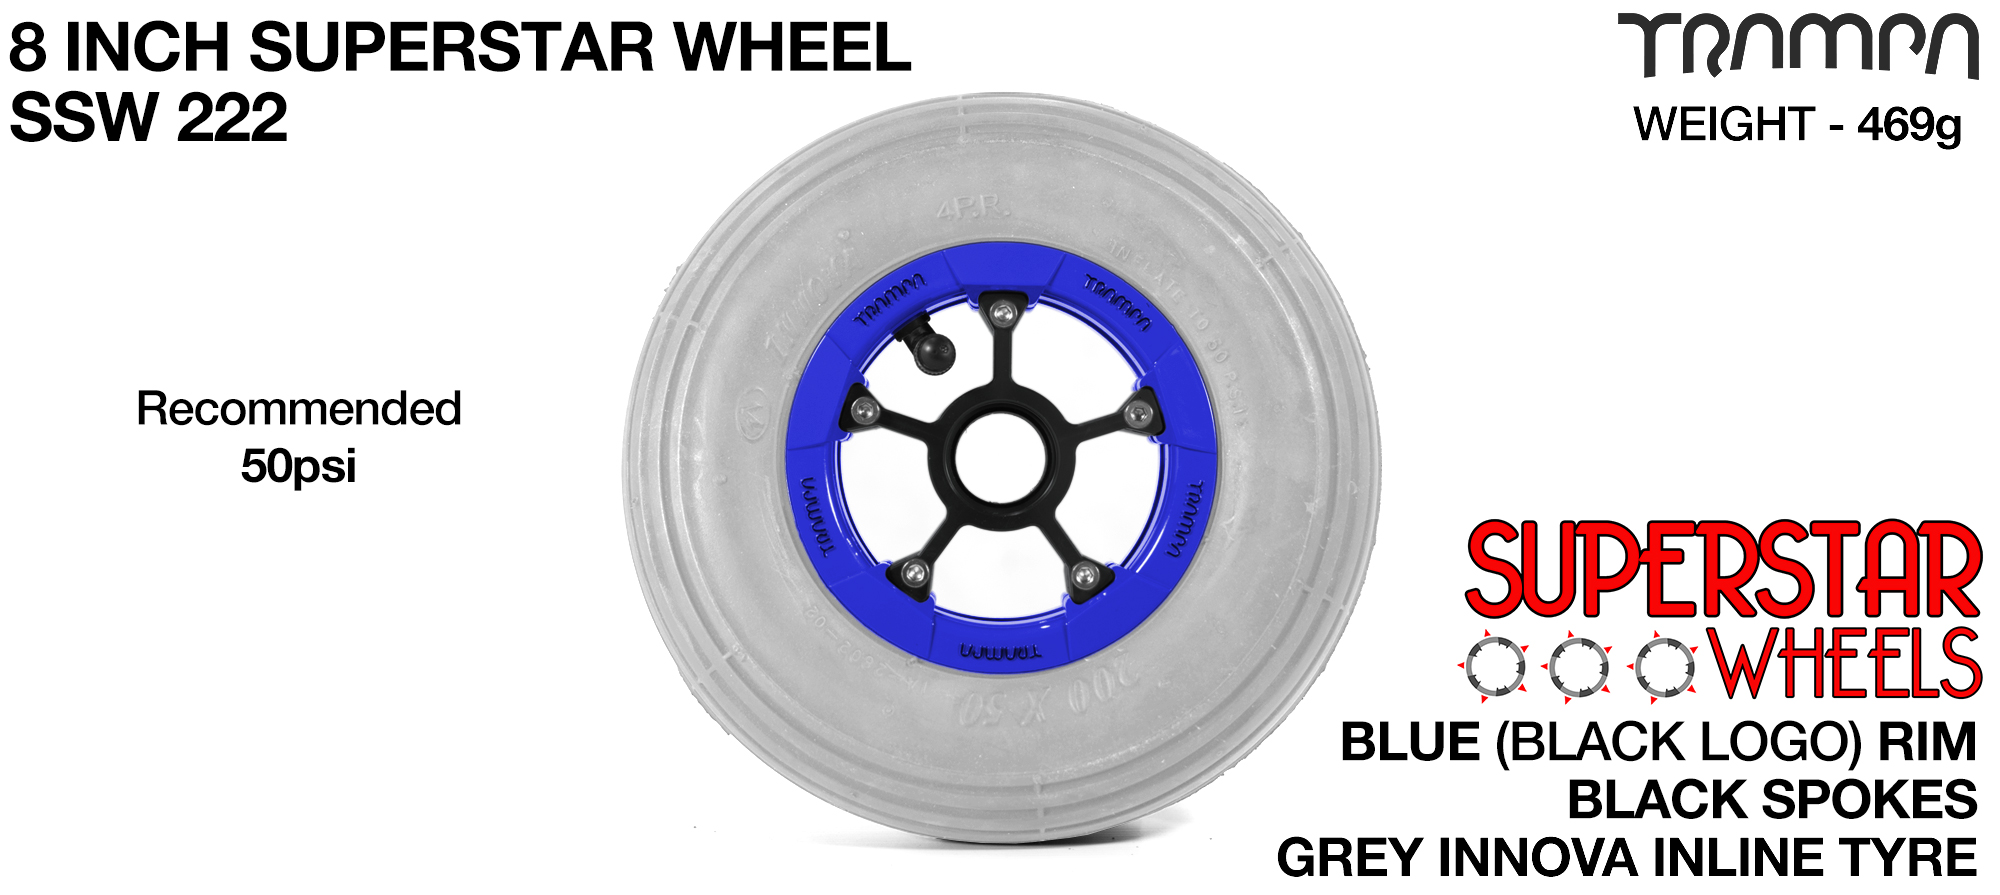 8 Inch Wheel - Blue Superstar Rim Black Anodised Spokes & Grey 8 Inch Inline Tyre (COPY)